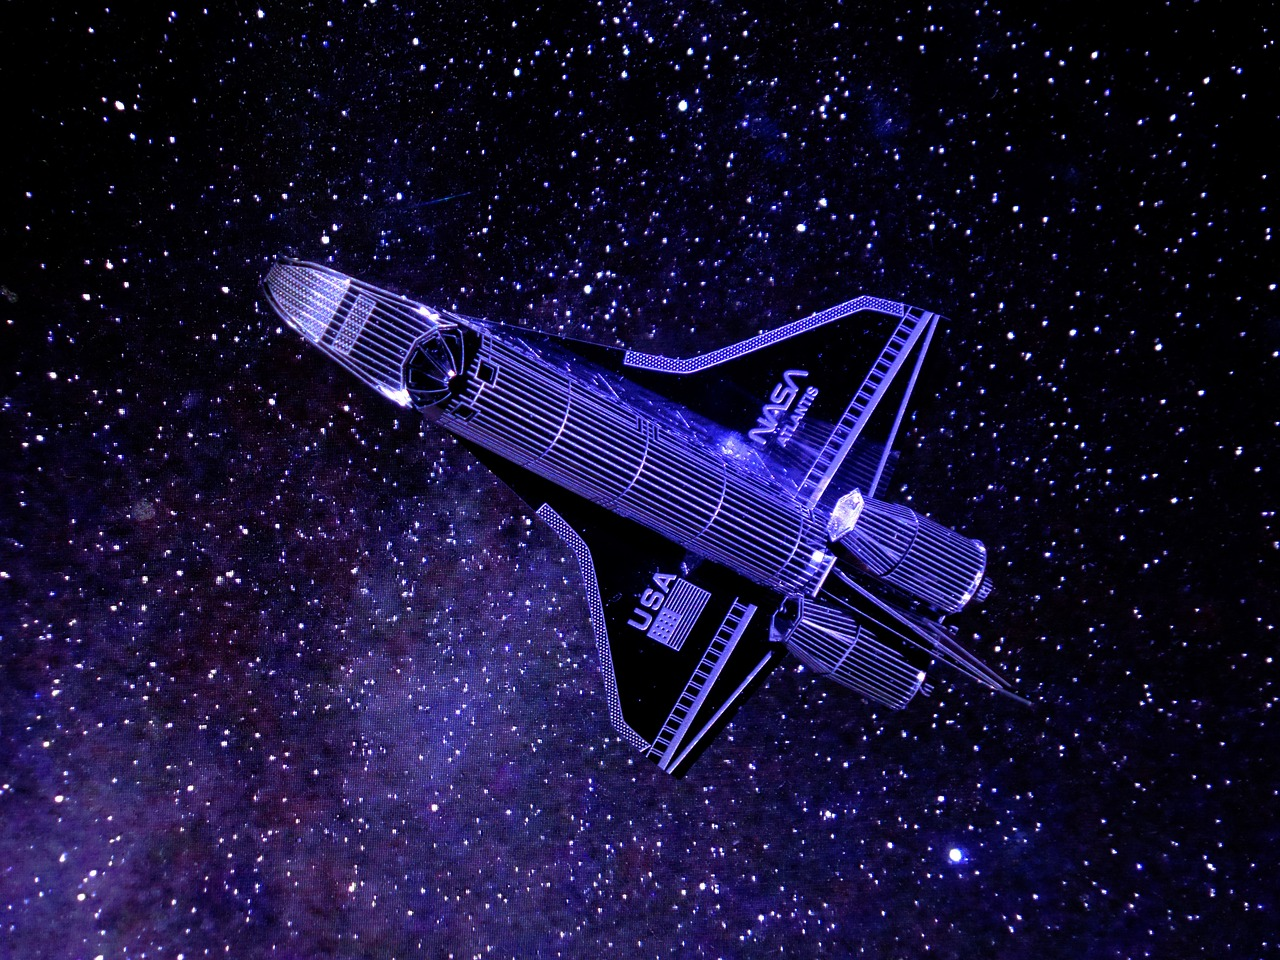 Download free photo of Toy,model,the space shuttle,miniatures,nasa - from needpix.com